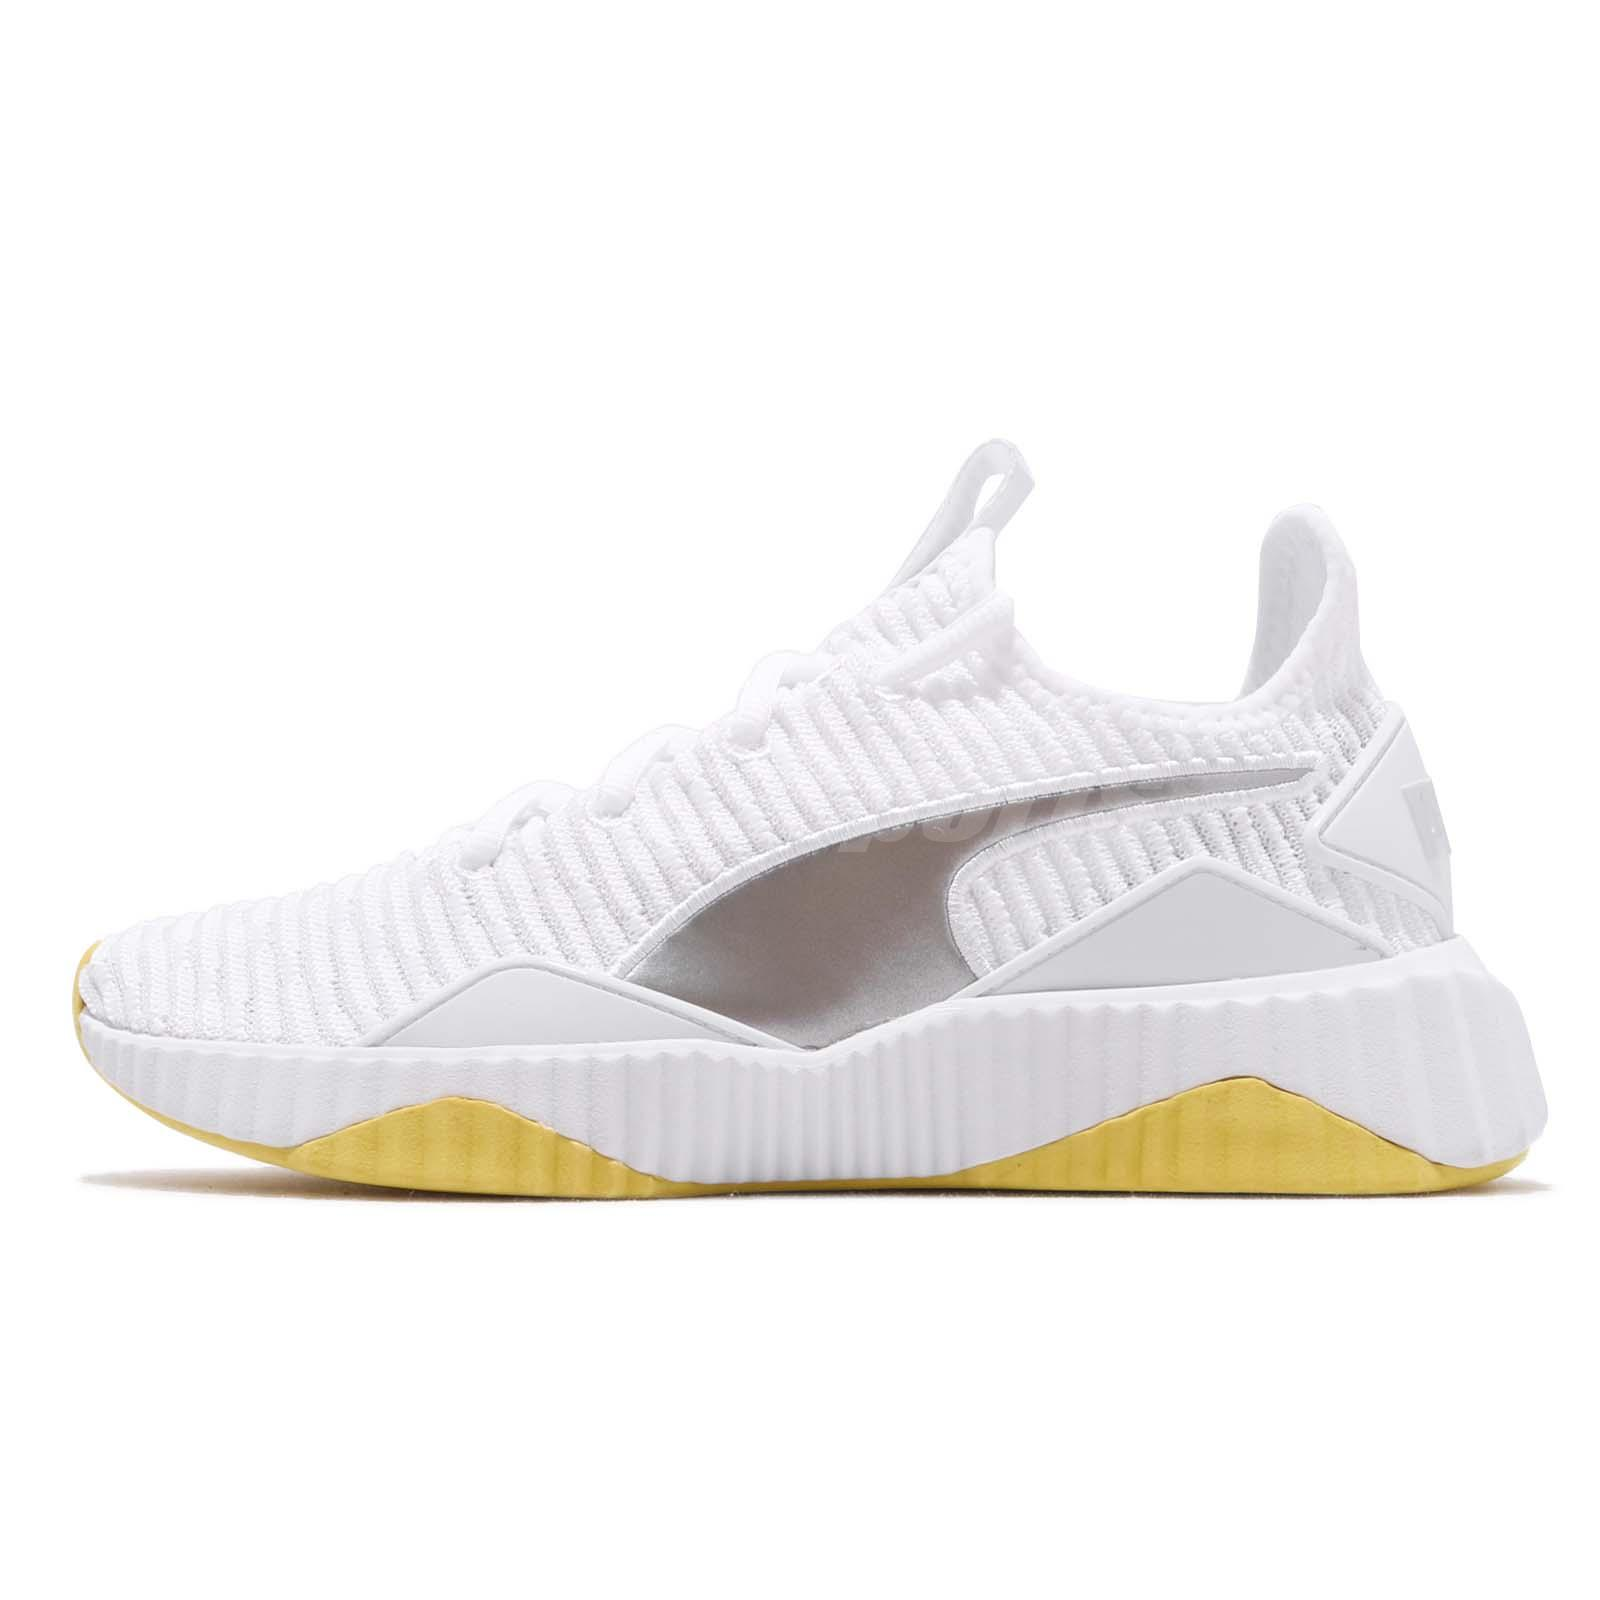 Details about Puma Defy TZ Wns White Blazing Yellow Women Running Shoes Sneakers 192249 01